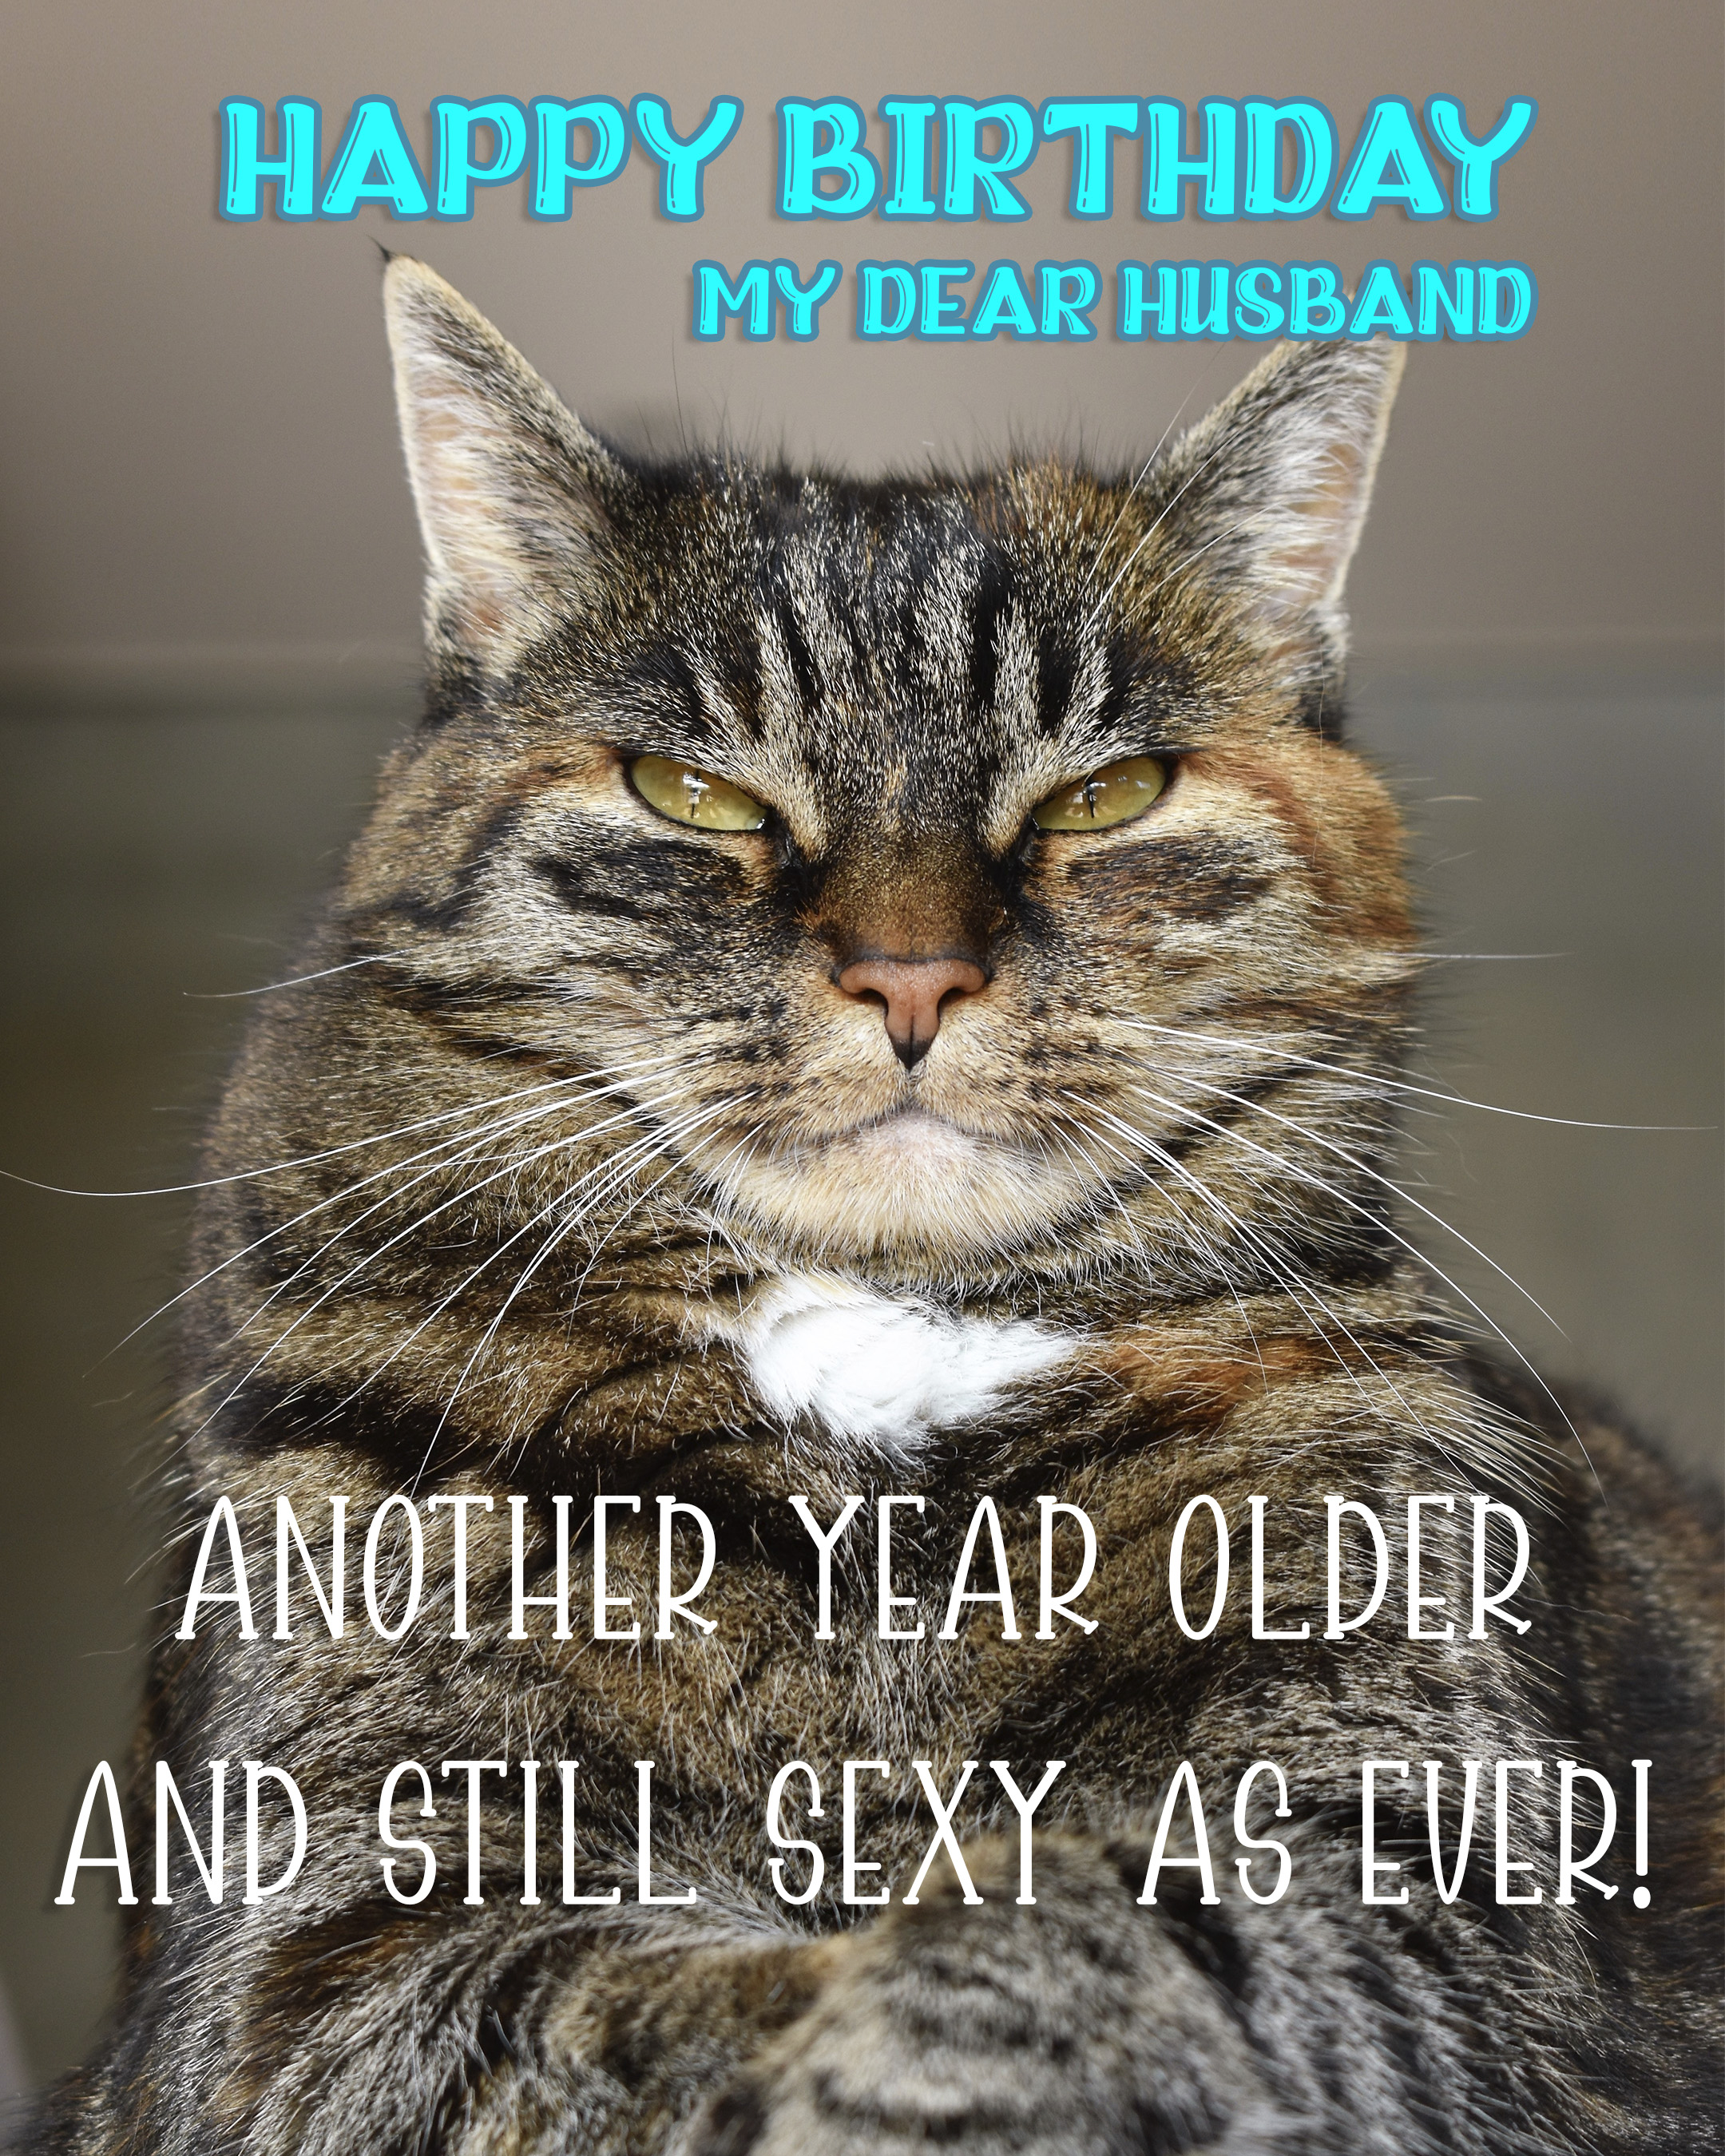 Free Funny Happy Birthday Image For Husband With Cat - birthdayimg.com